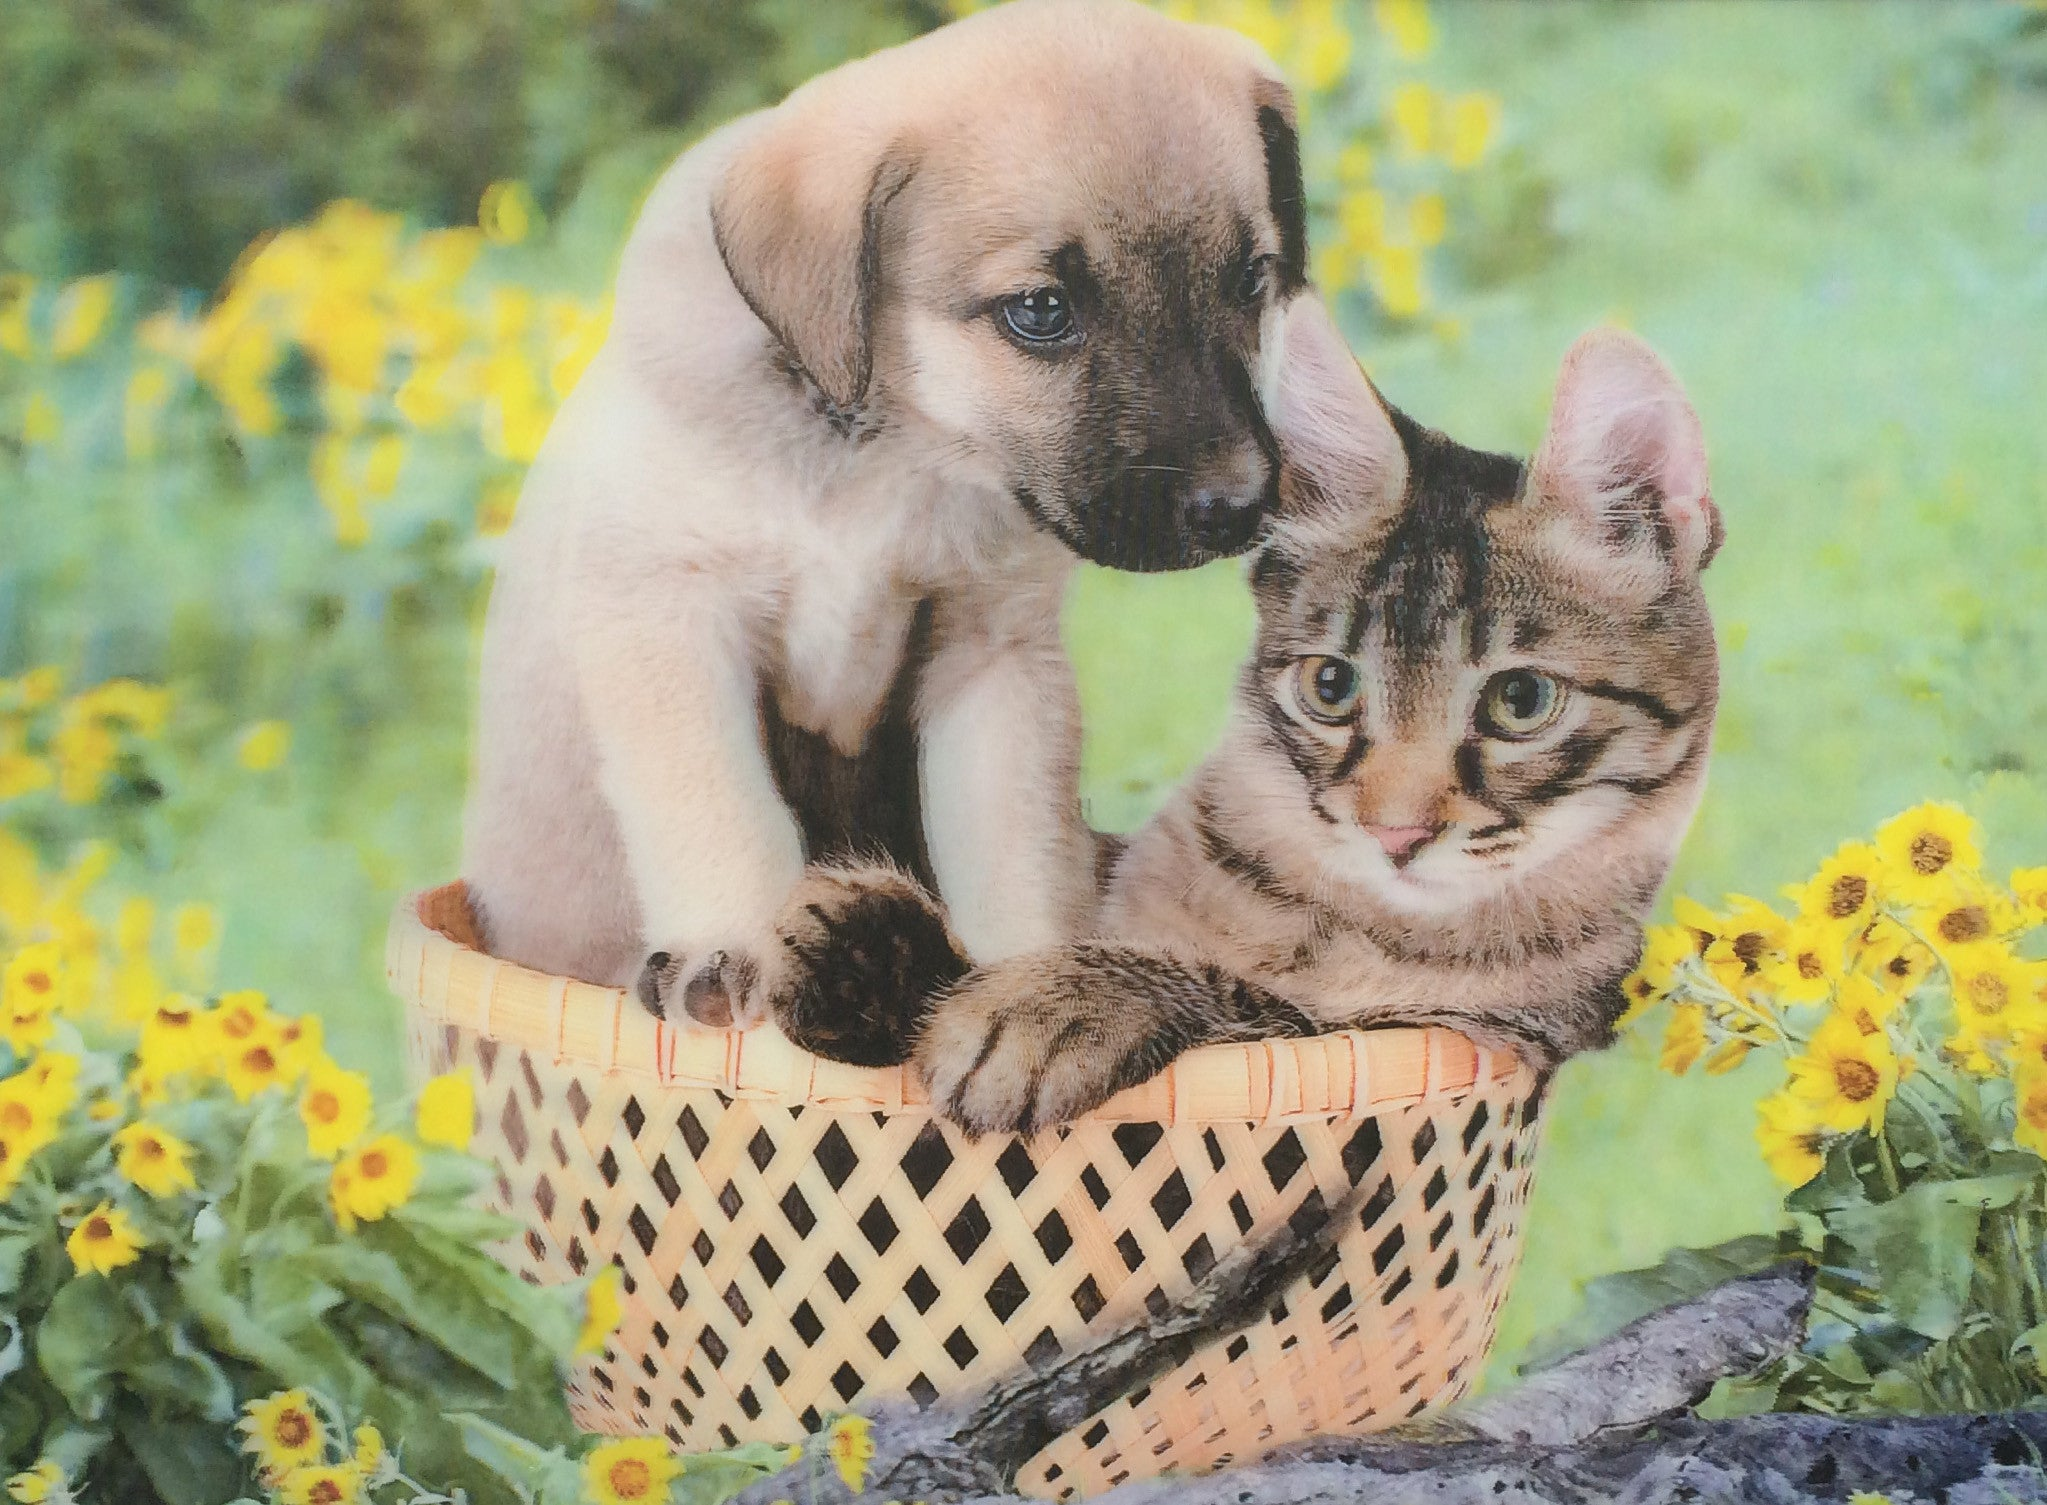 DC 18 Puppy And Kitten In Basket 3D